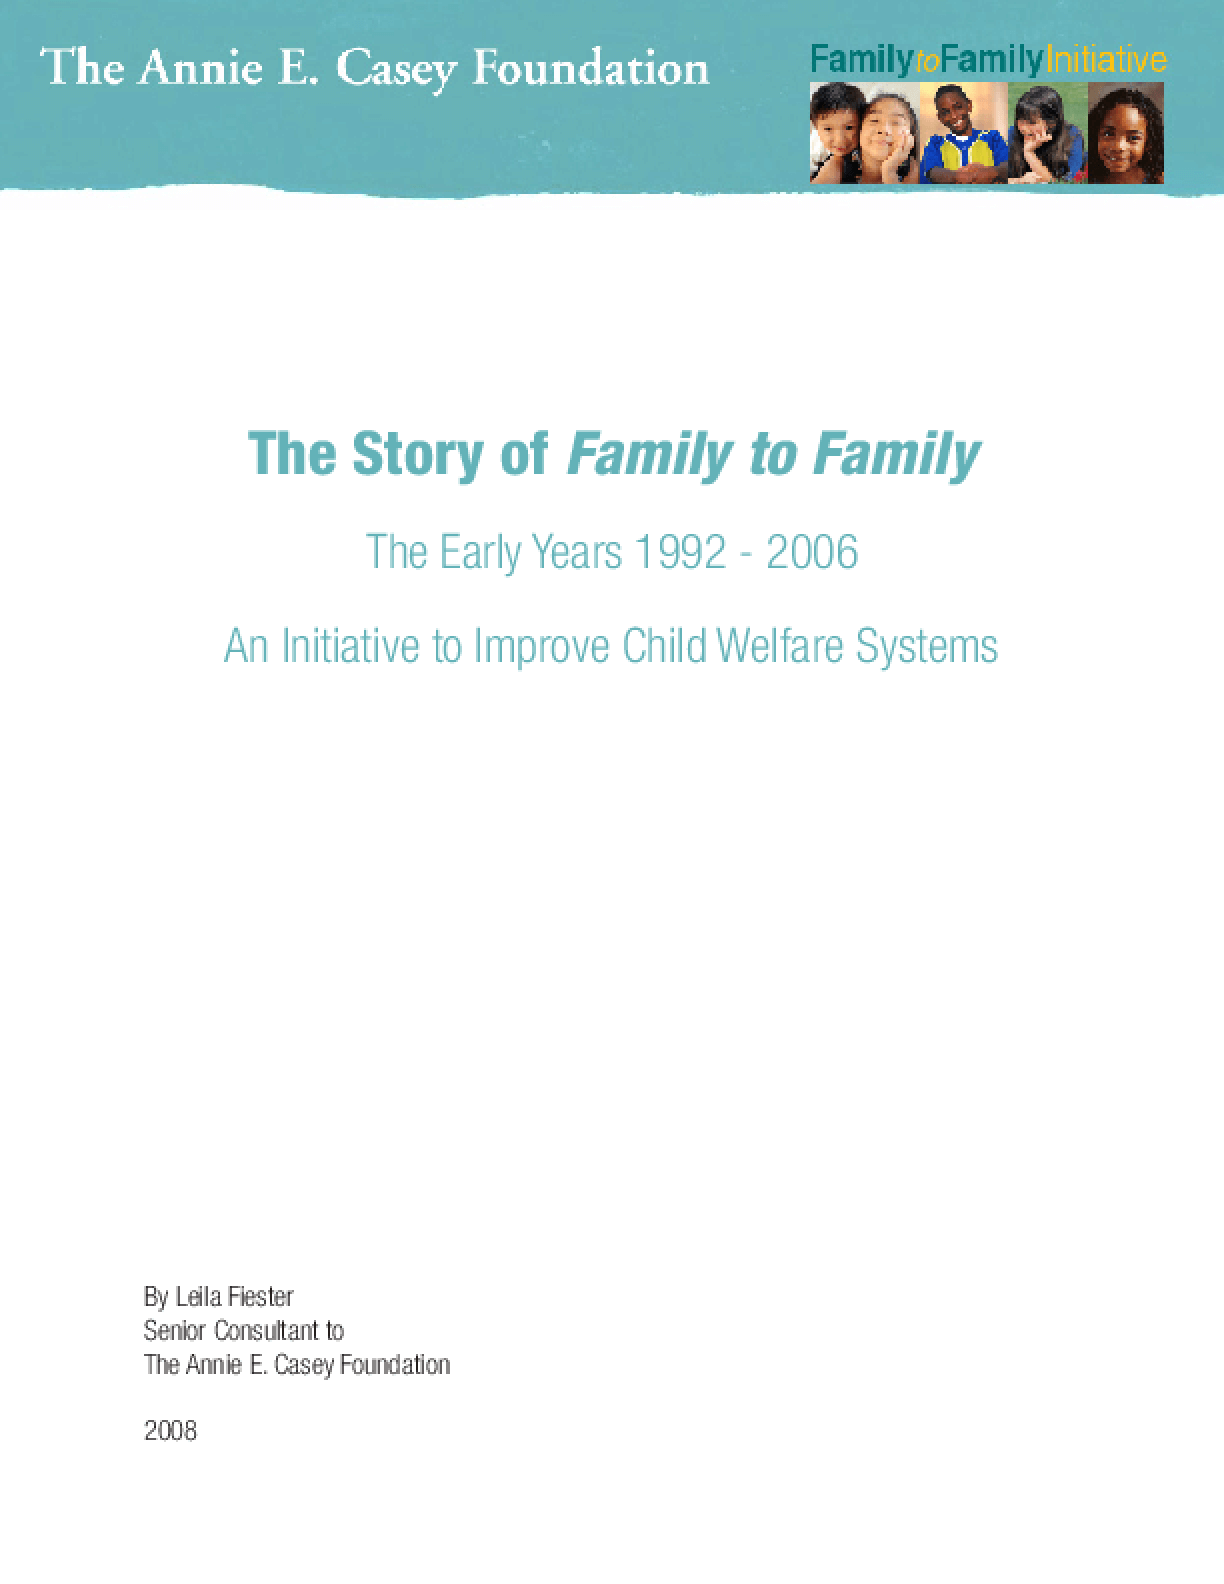 The Story of Family to Family: The Early Years (1992-2006) of an Initiative to Improve Child Welfare Systems